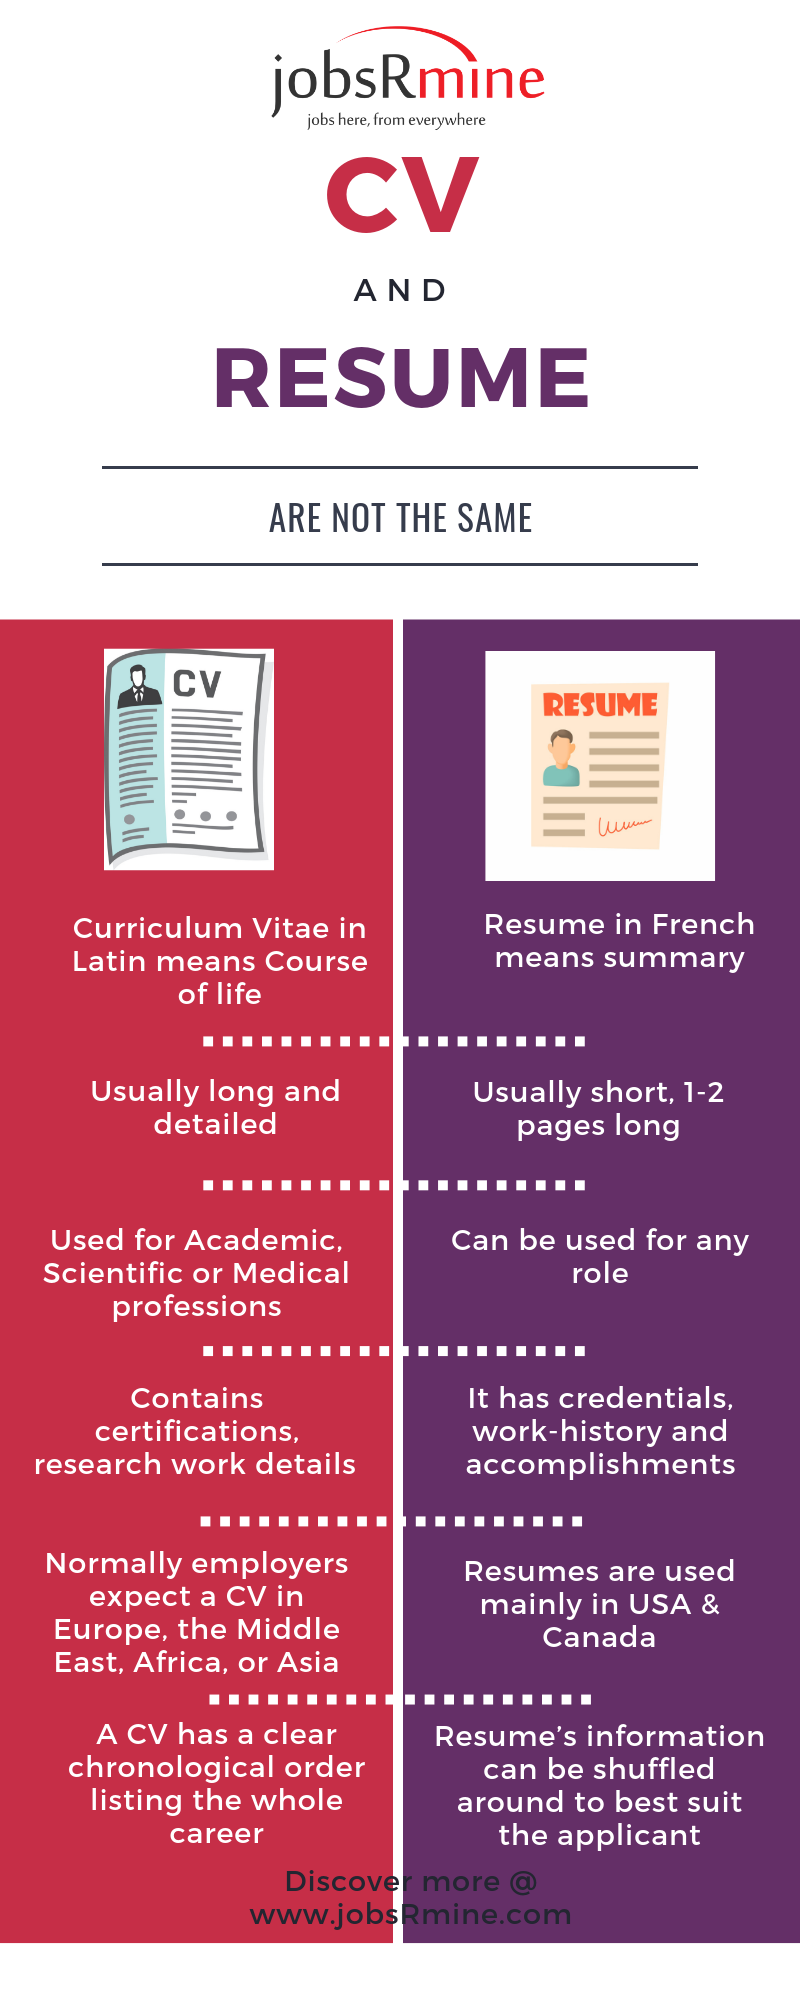 Download Difference between CV and a Resume for free, by clicking download button